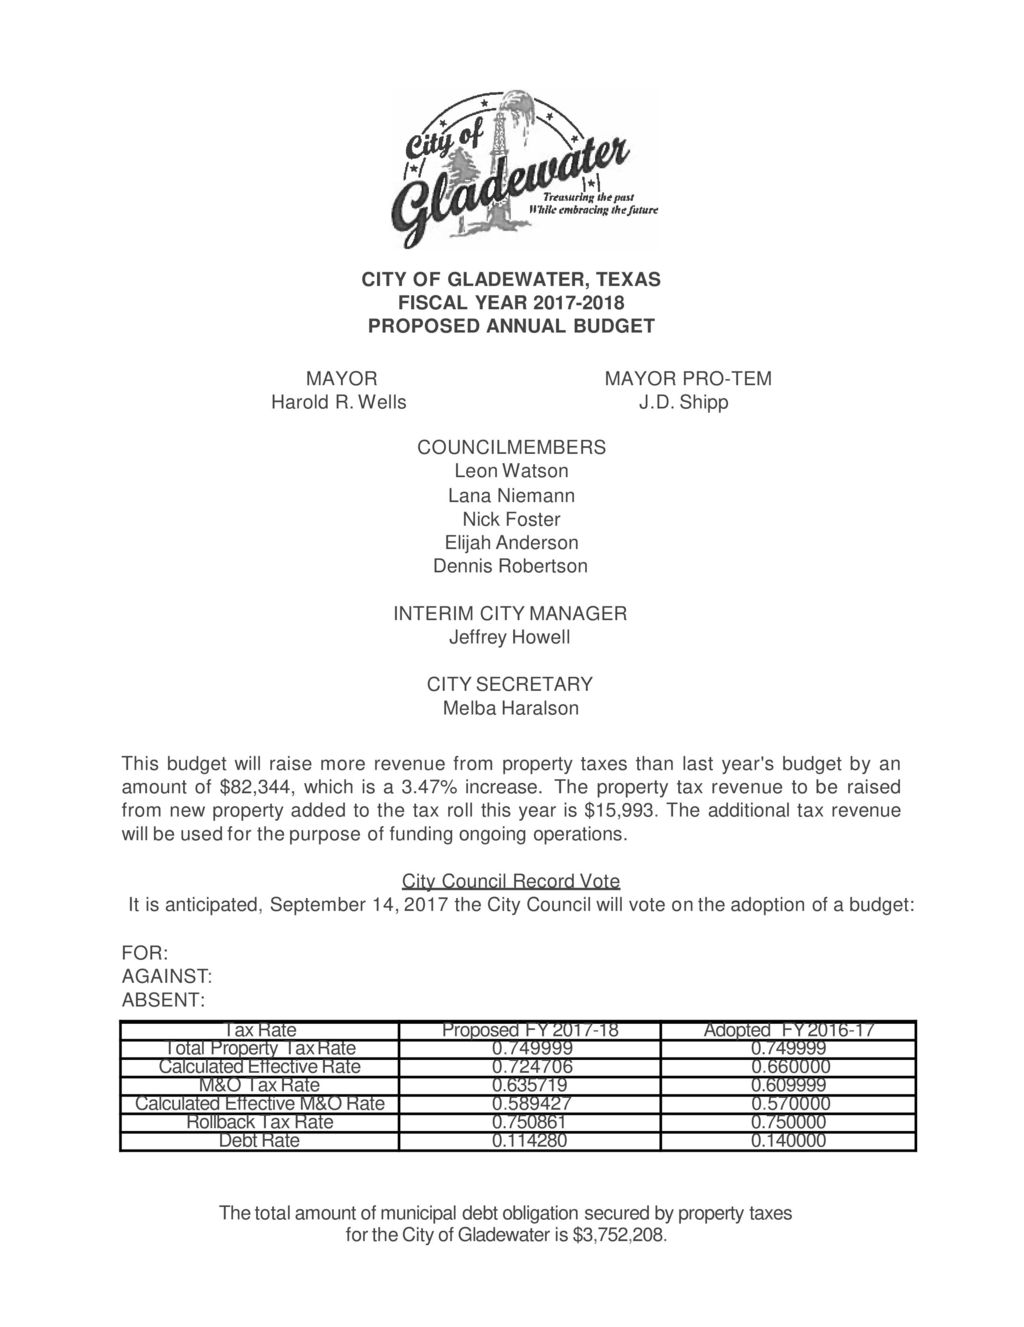 CITY OF GLADEWATER, TEXAS FISCAL YEAR PROPOSED ANNUAL BUDGET